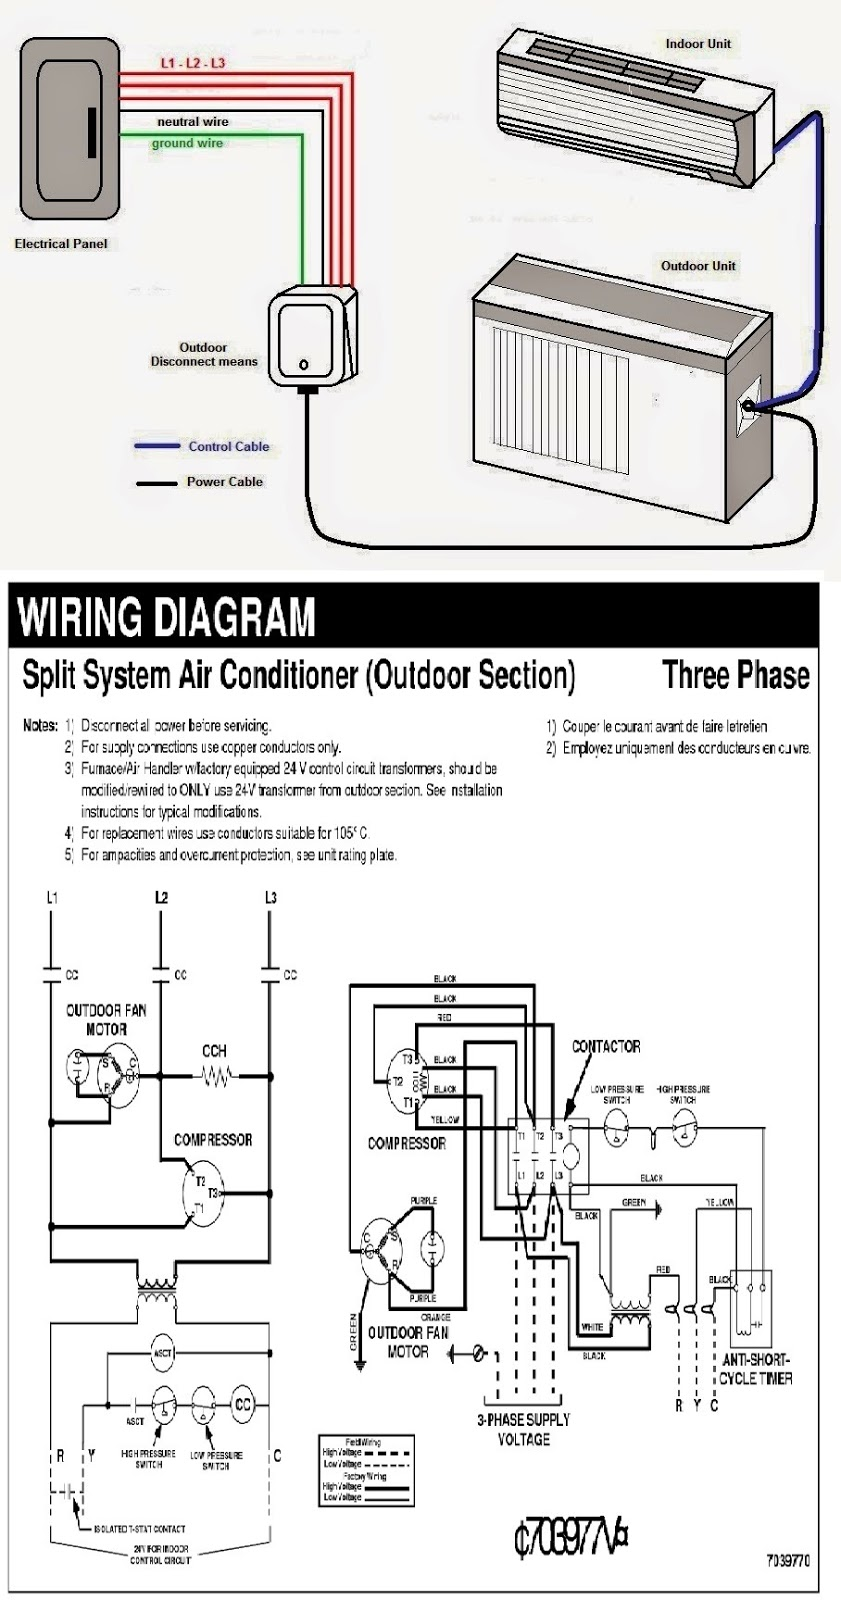 Course: HVAC-2: Electrical Wiring Diagrams and